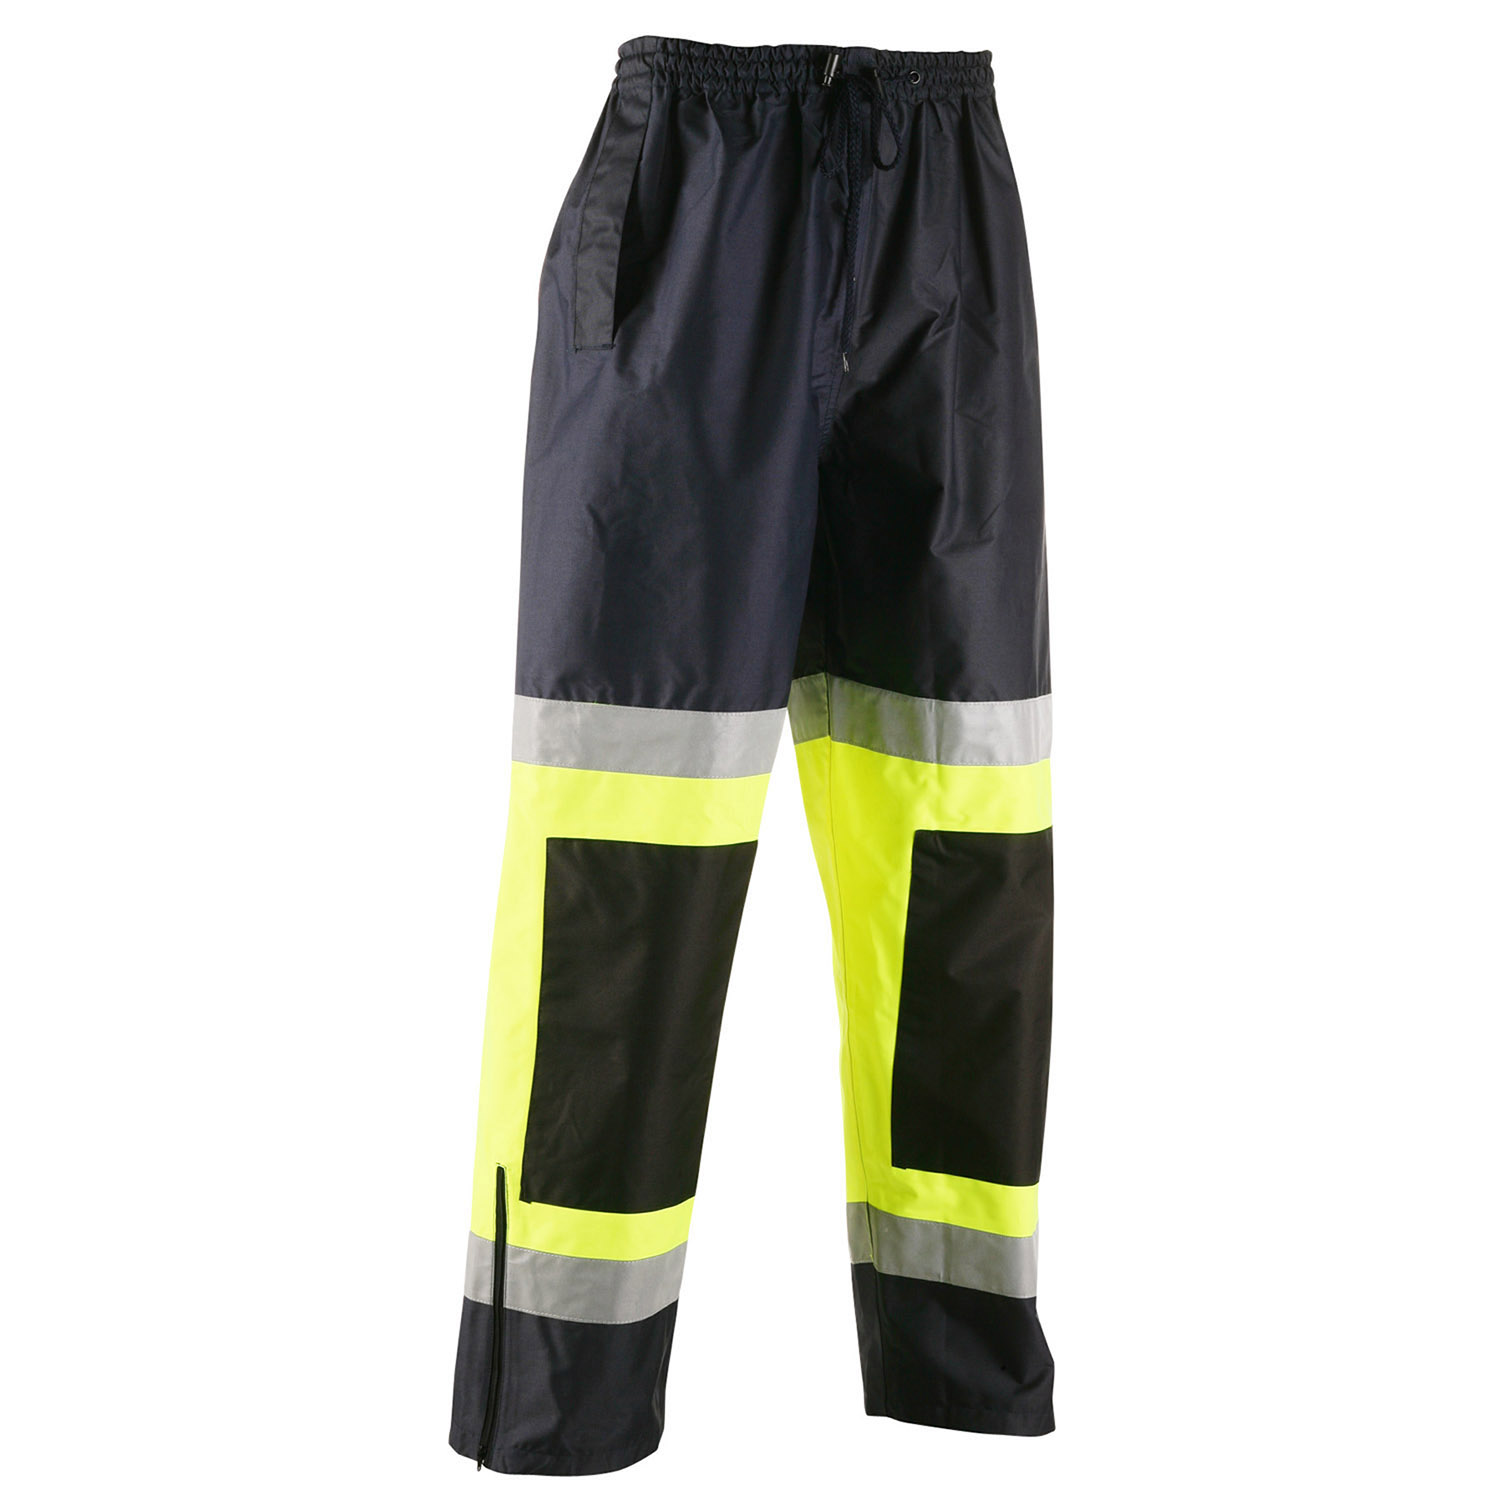 Galls ANSI 3 Two Tone Reflective Rain Pant